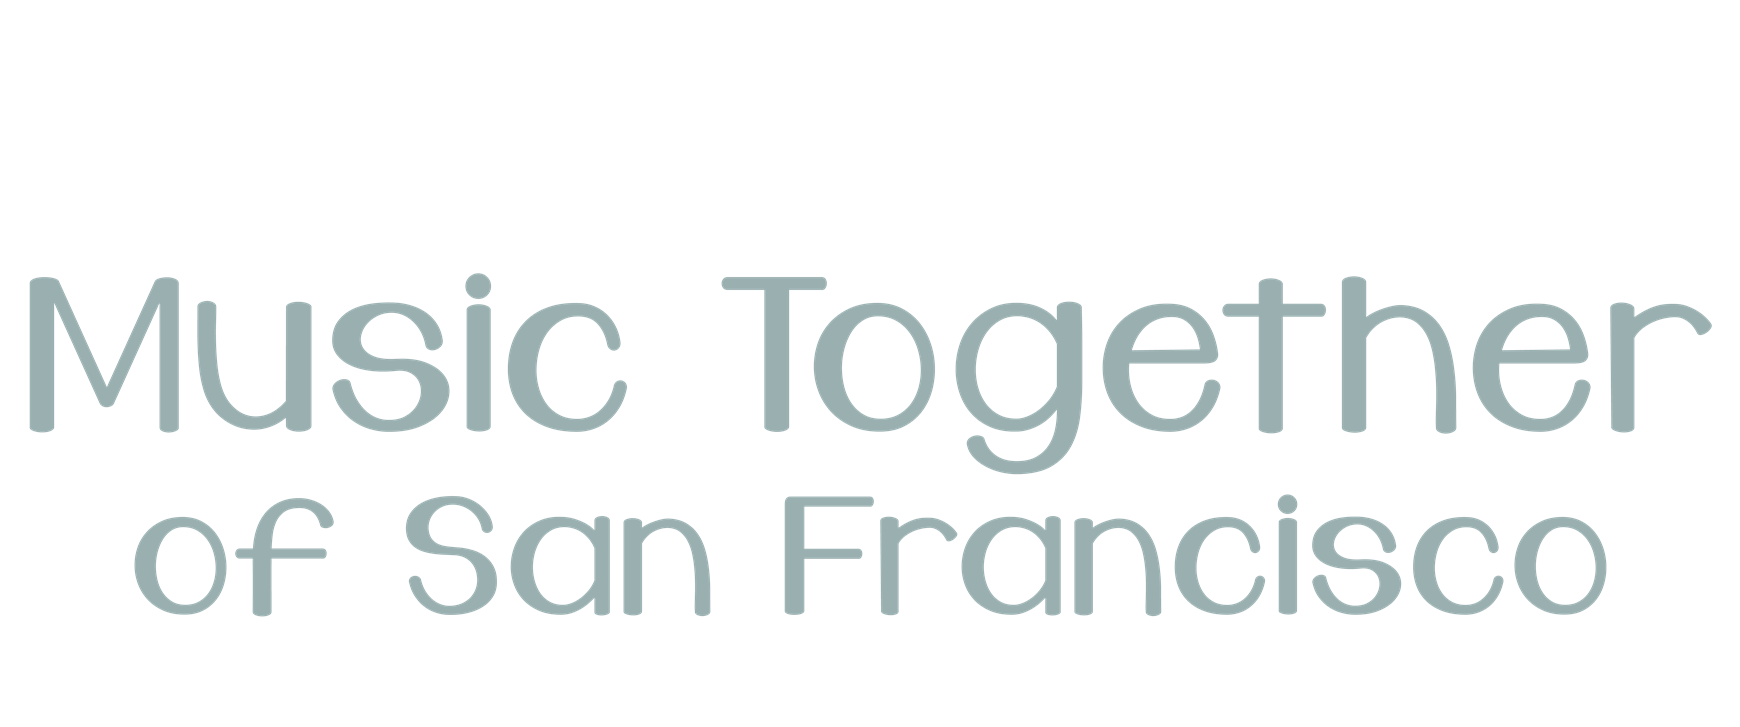 Music Together of San Francisco